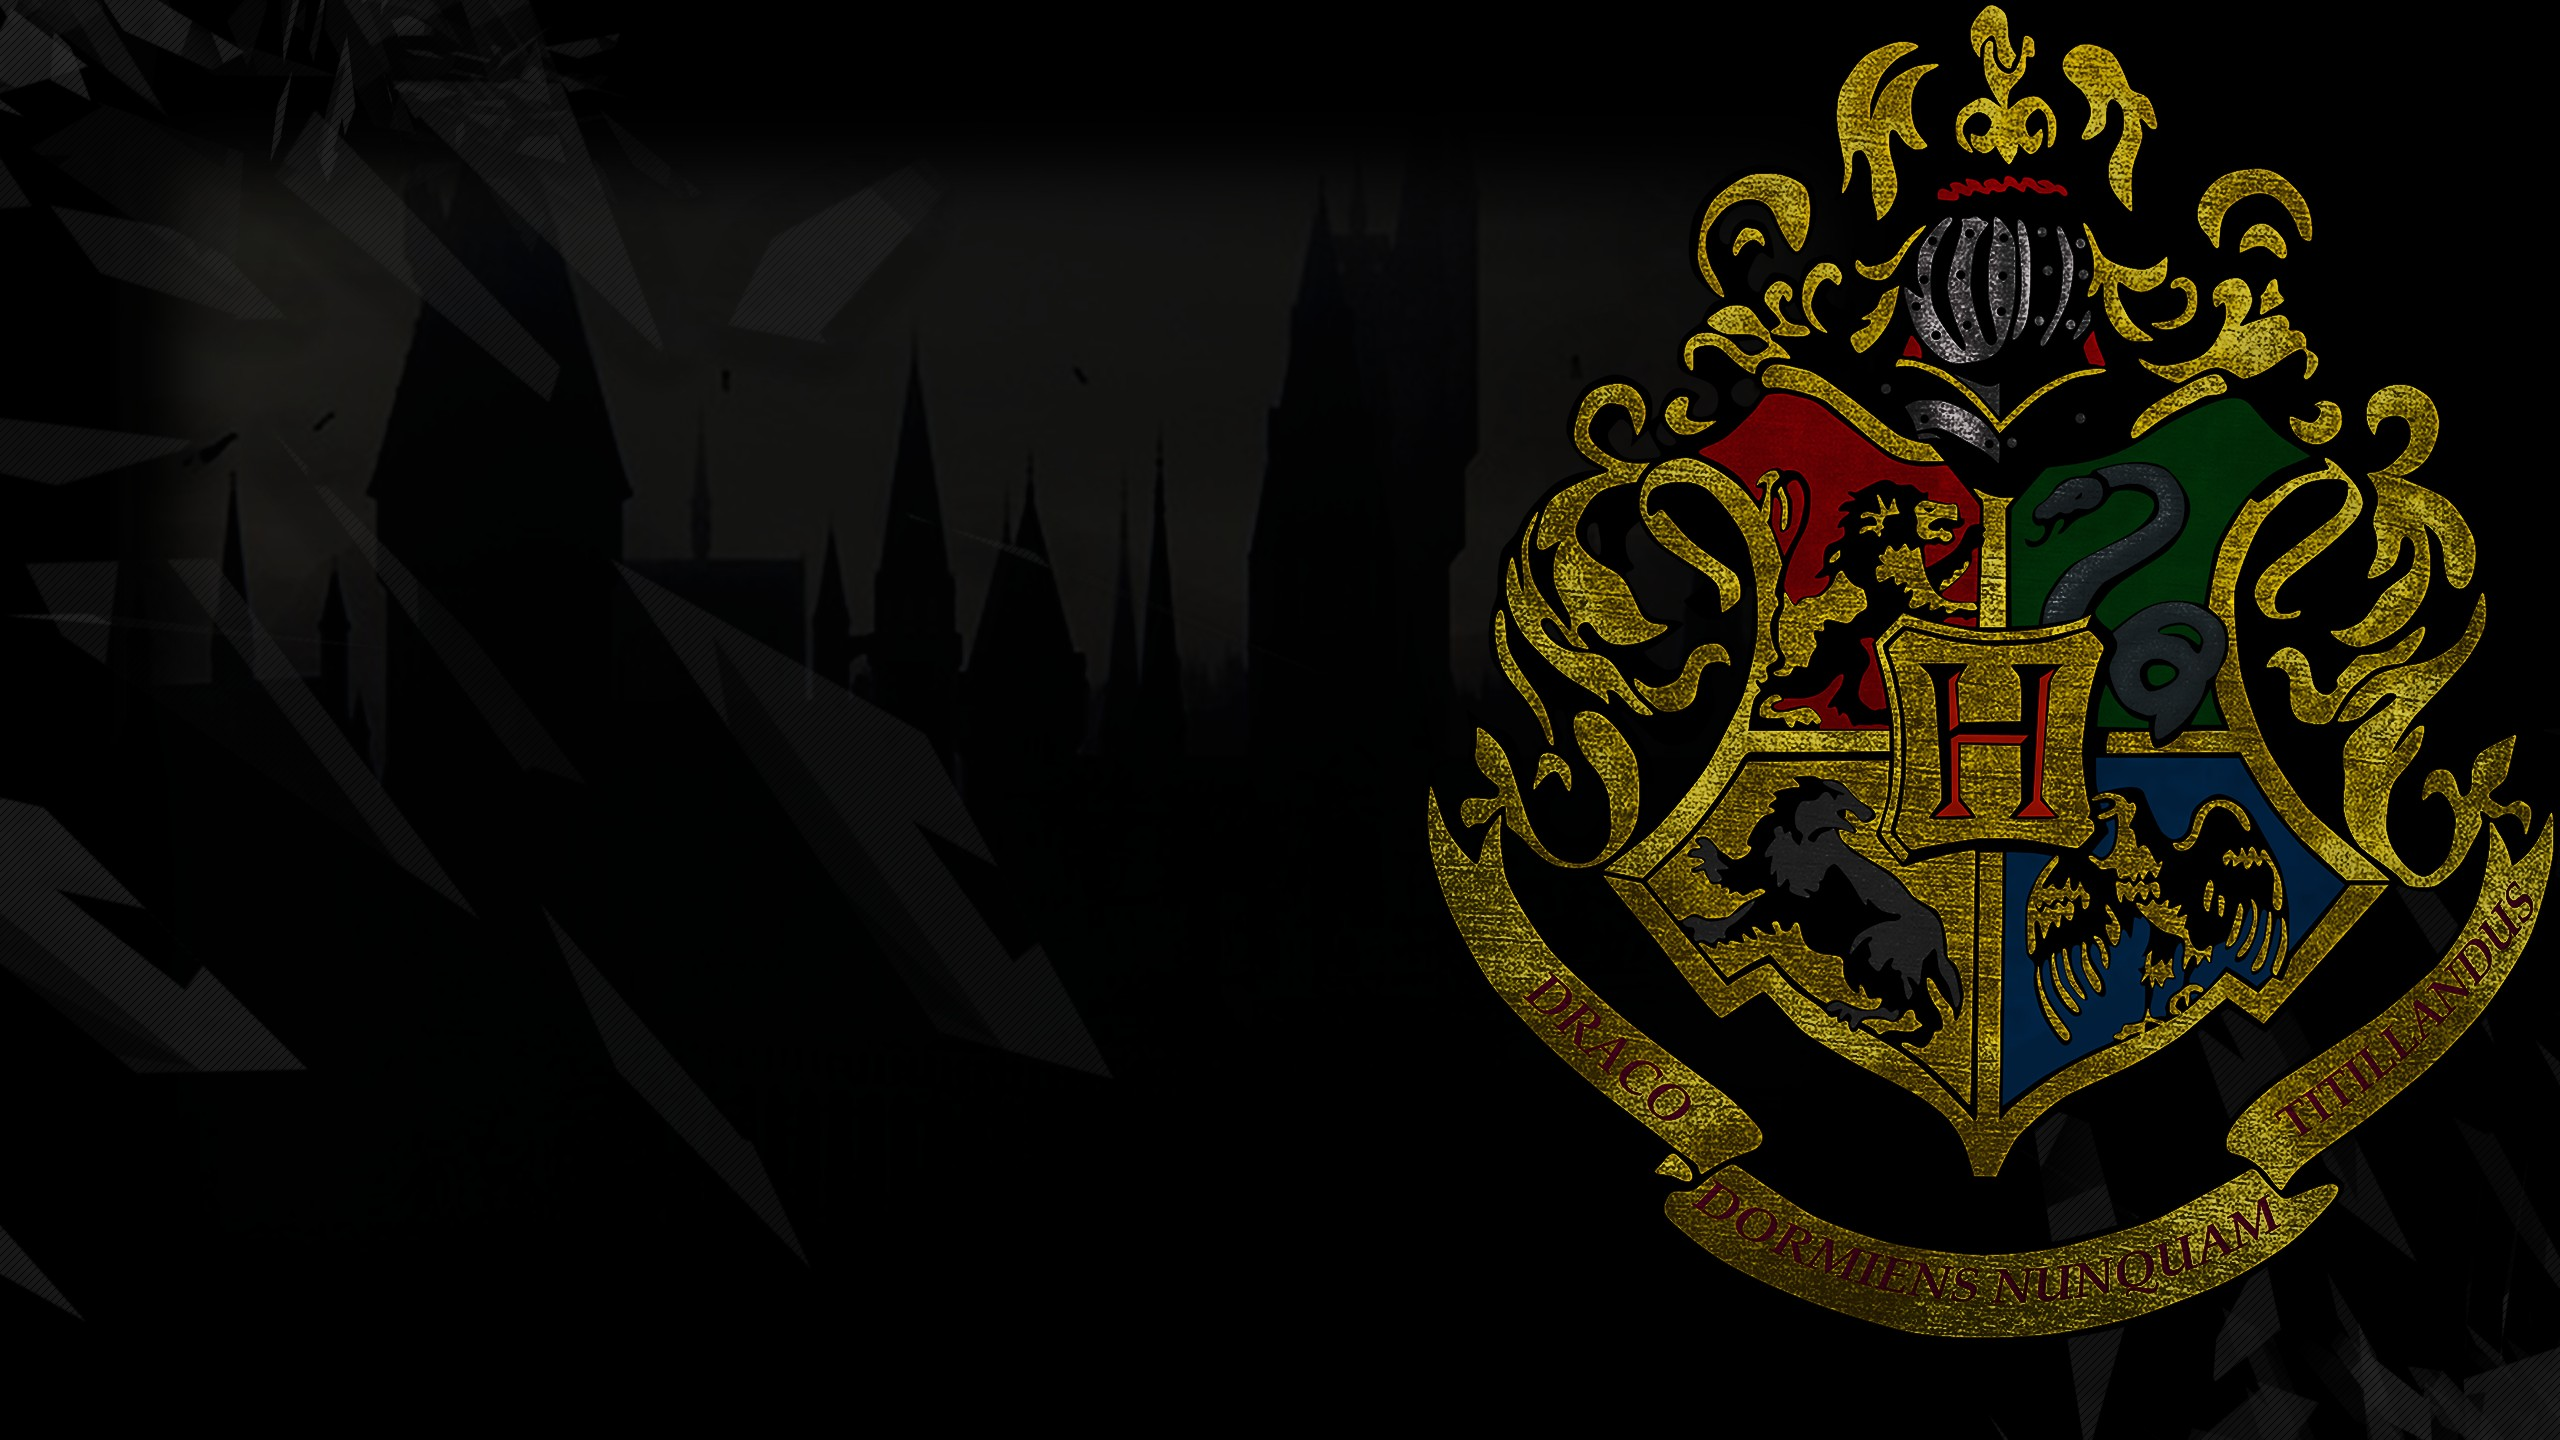 Slytherin wallpaper ·① Download free stunning wallpapers ...